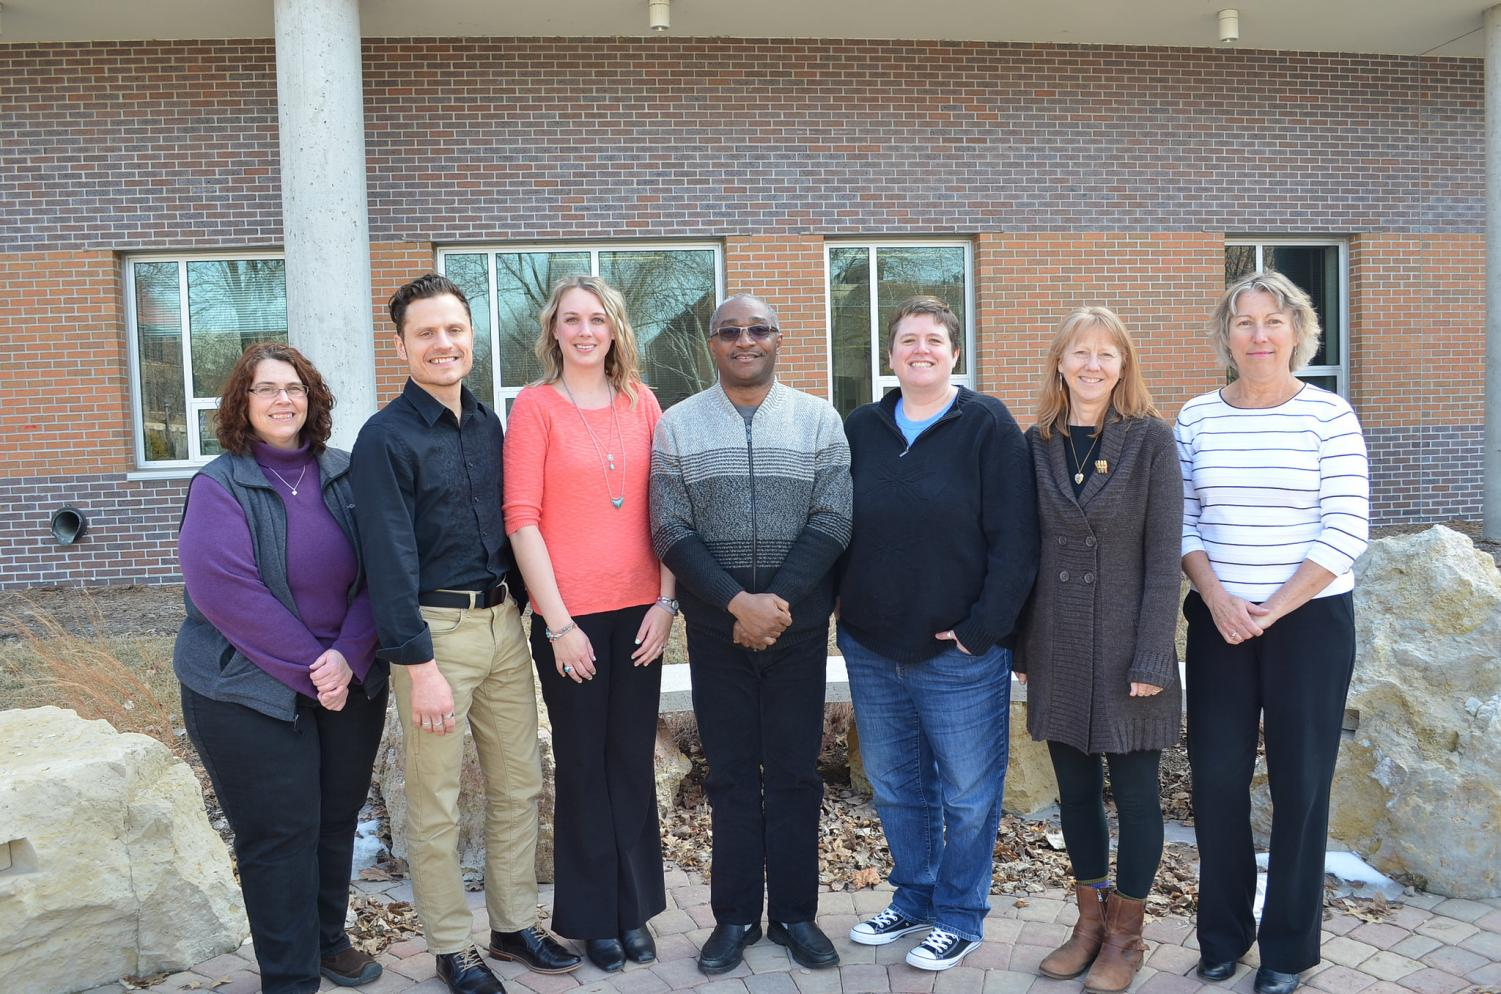 The Winona State counseling staff from left to right: Lynda Brzezinski, Mick Lynch, Kateri Johnson, Benedict Ogum Ezeoke, Eunie Alsaker and Debbie Dickenson. Last Wednesday, March 14, Student Senate voted in approval of an 18 percent hike of the student wellness fee in order to hire a new counselor. The hope is that this will help reduce the two-week wait time and provide students with another counselor to speak to.